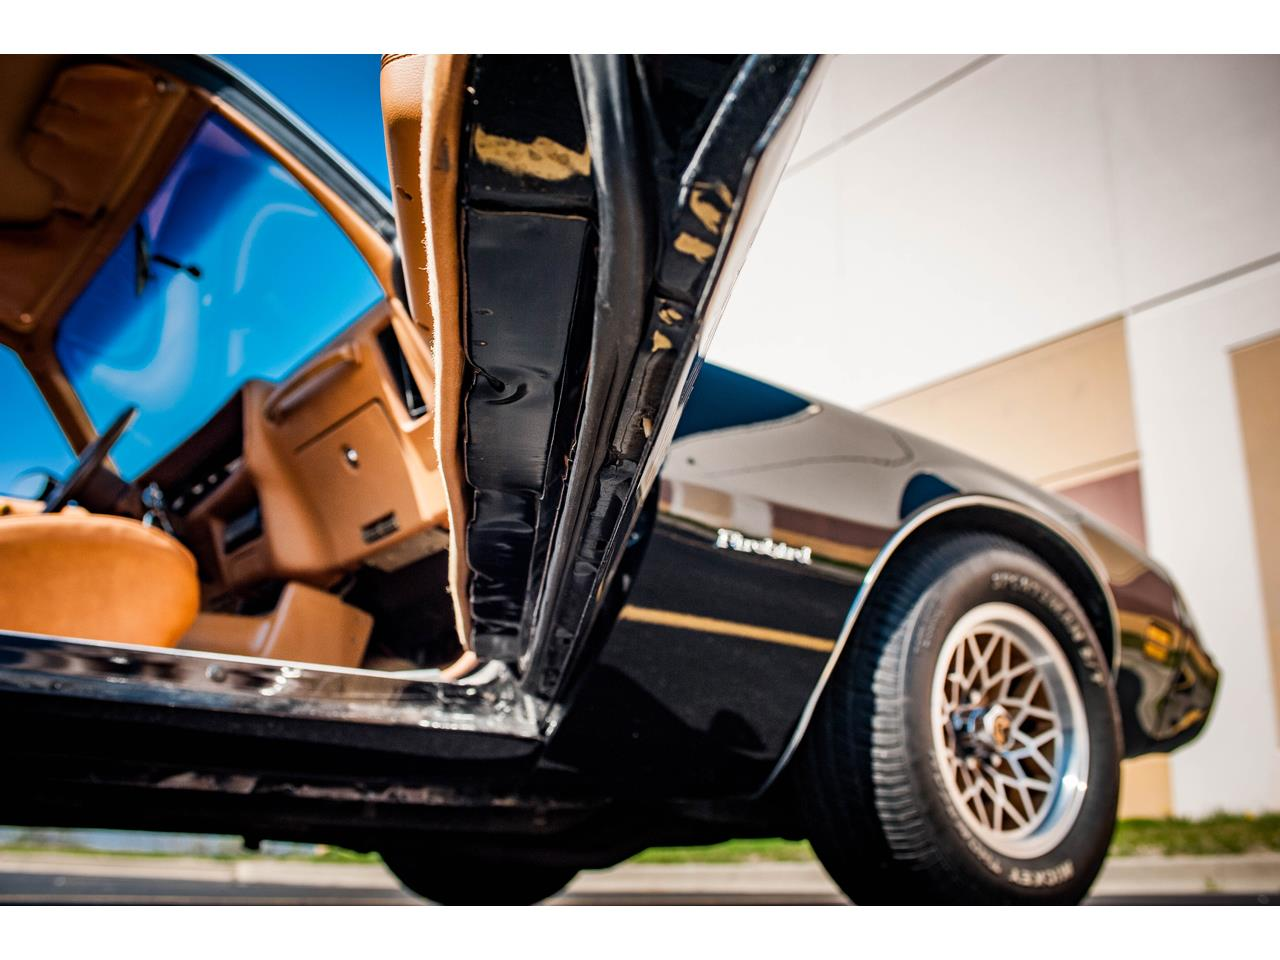 Large Picture of '79 Pontiac Firebird located in O'Fallon Illinois - $36,500.00 Offered by Gateway Classic Cars - St. Louis - QB8A